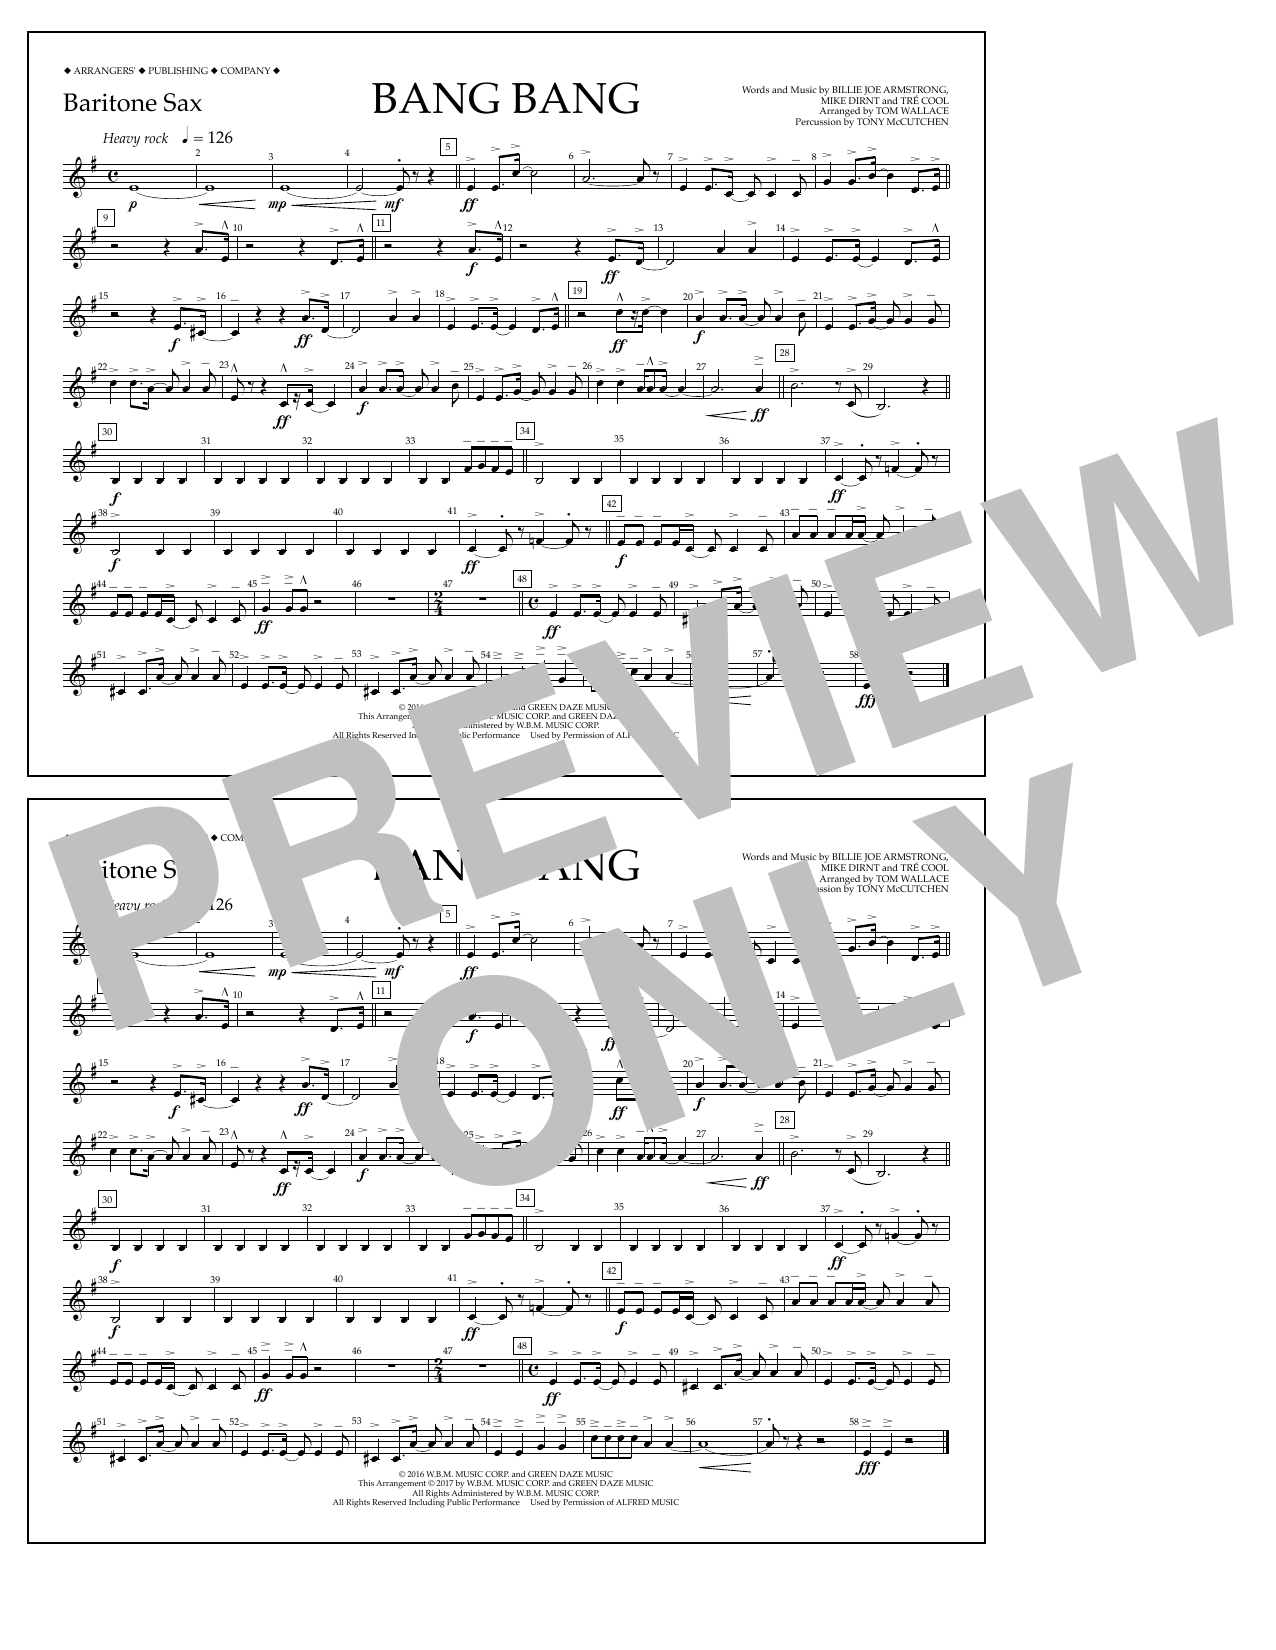 Bang Bang - Baritone Sax Sheet Music